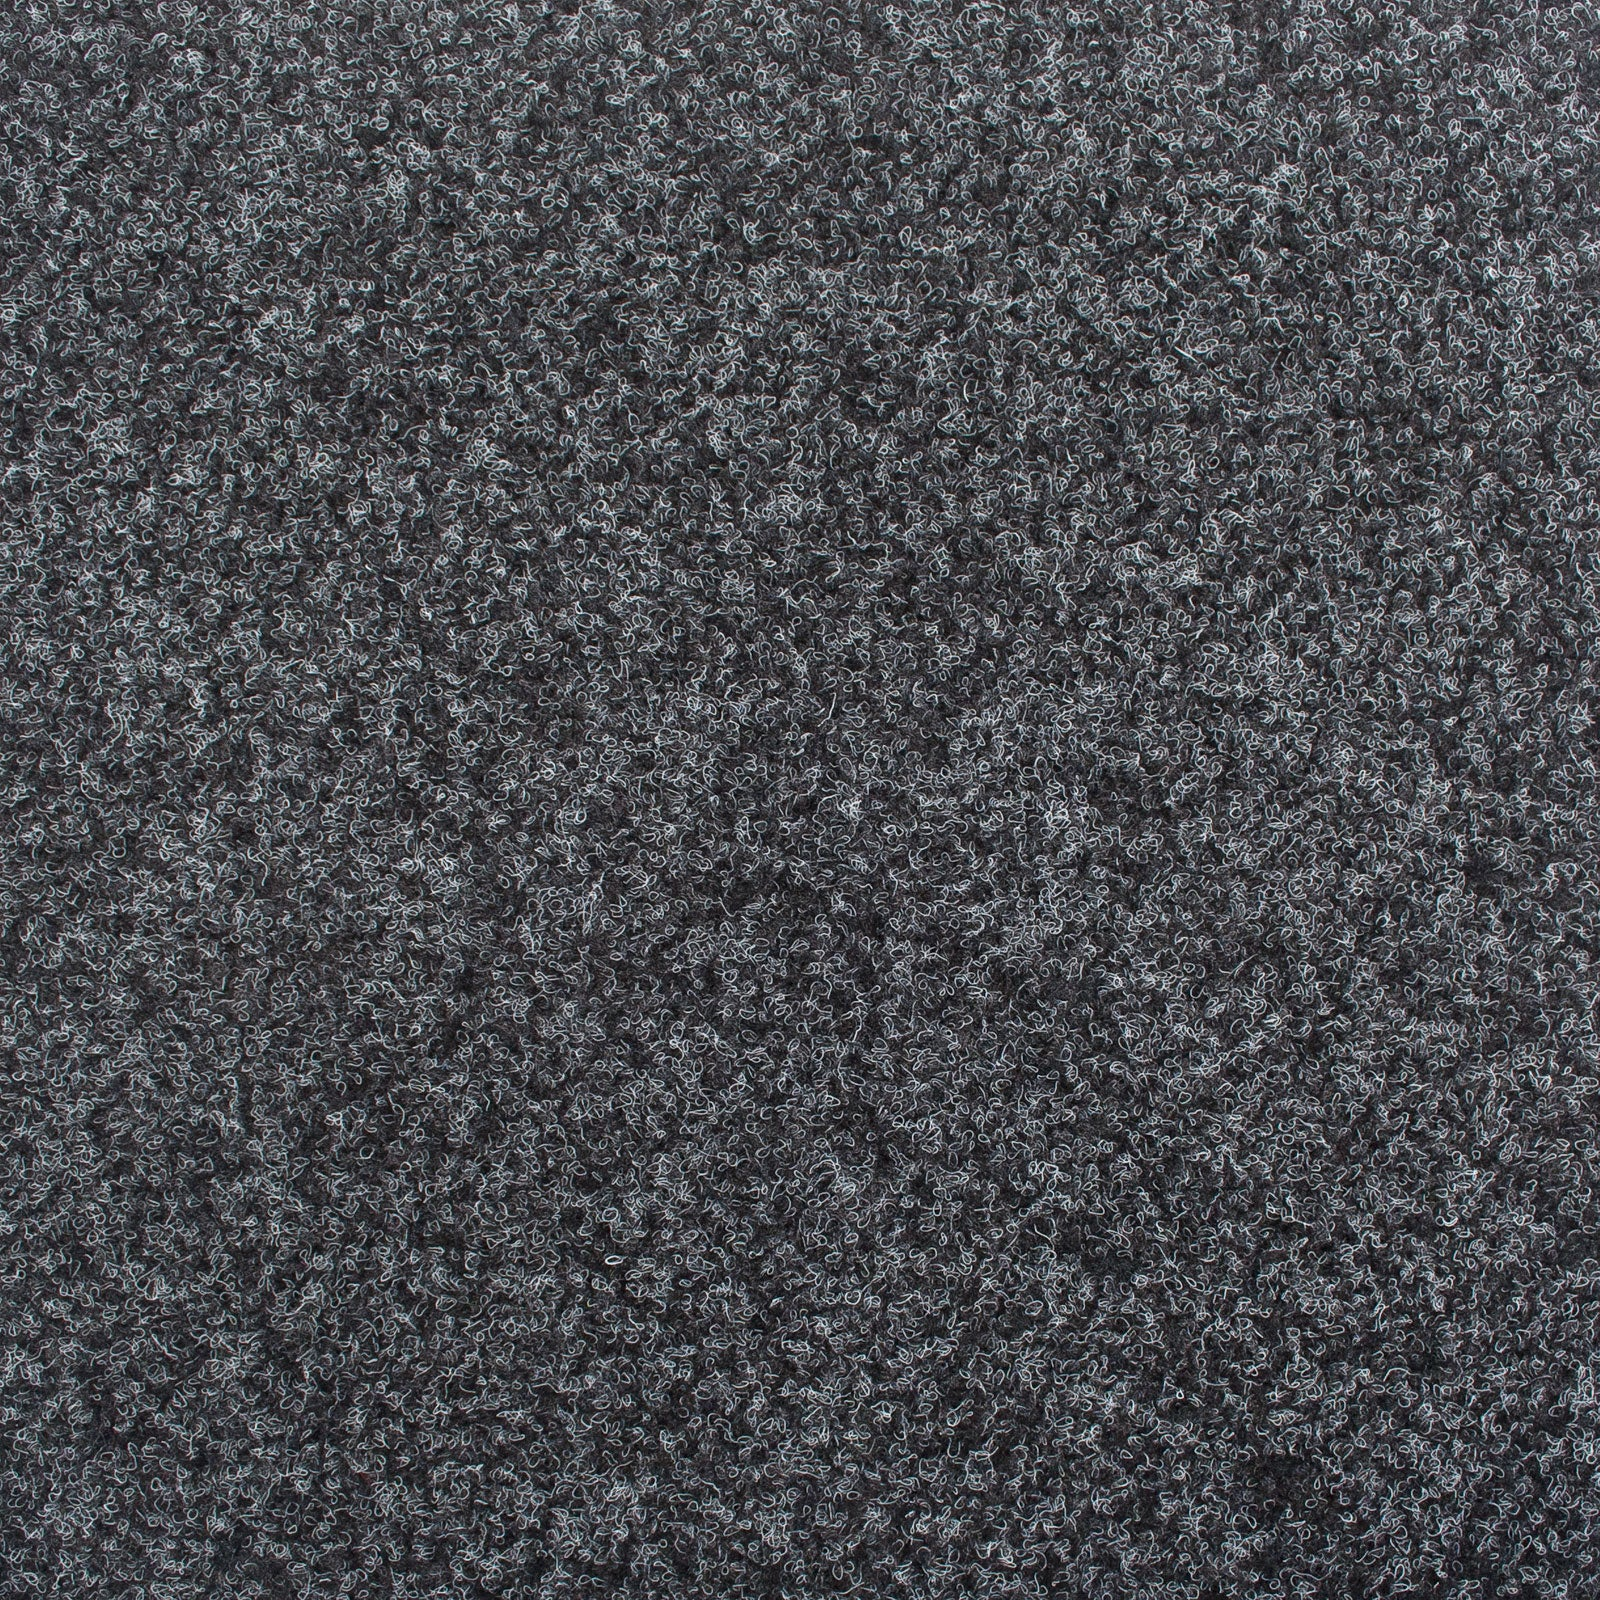 Anthracite Black Contract Velour Gel Back Carpet - Far